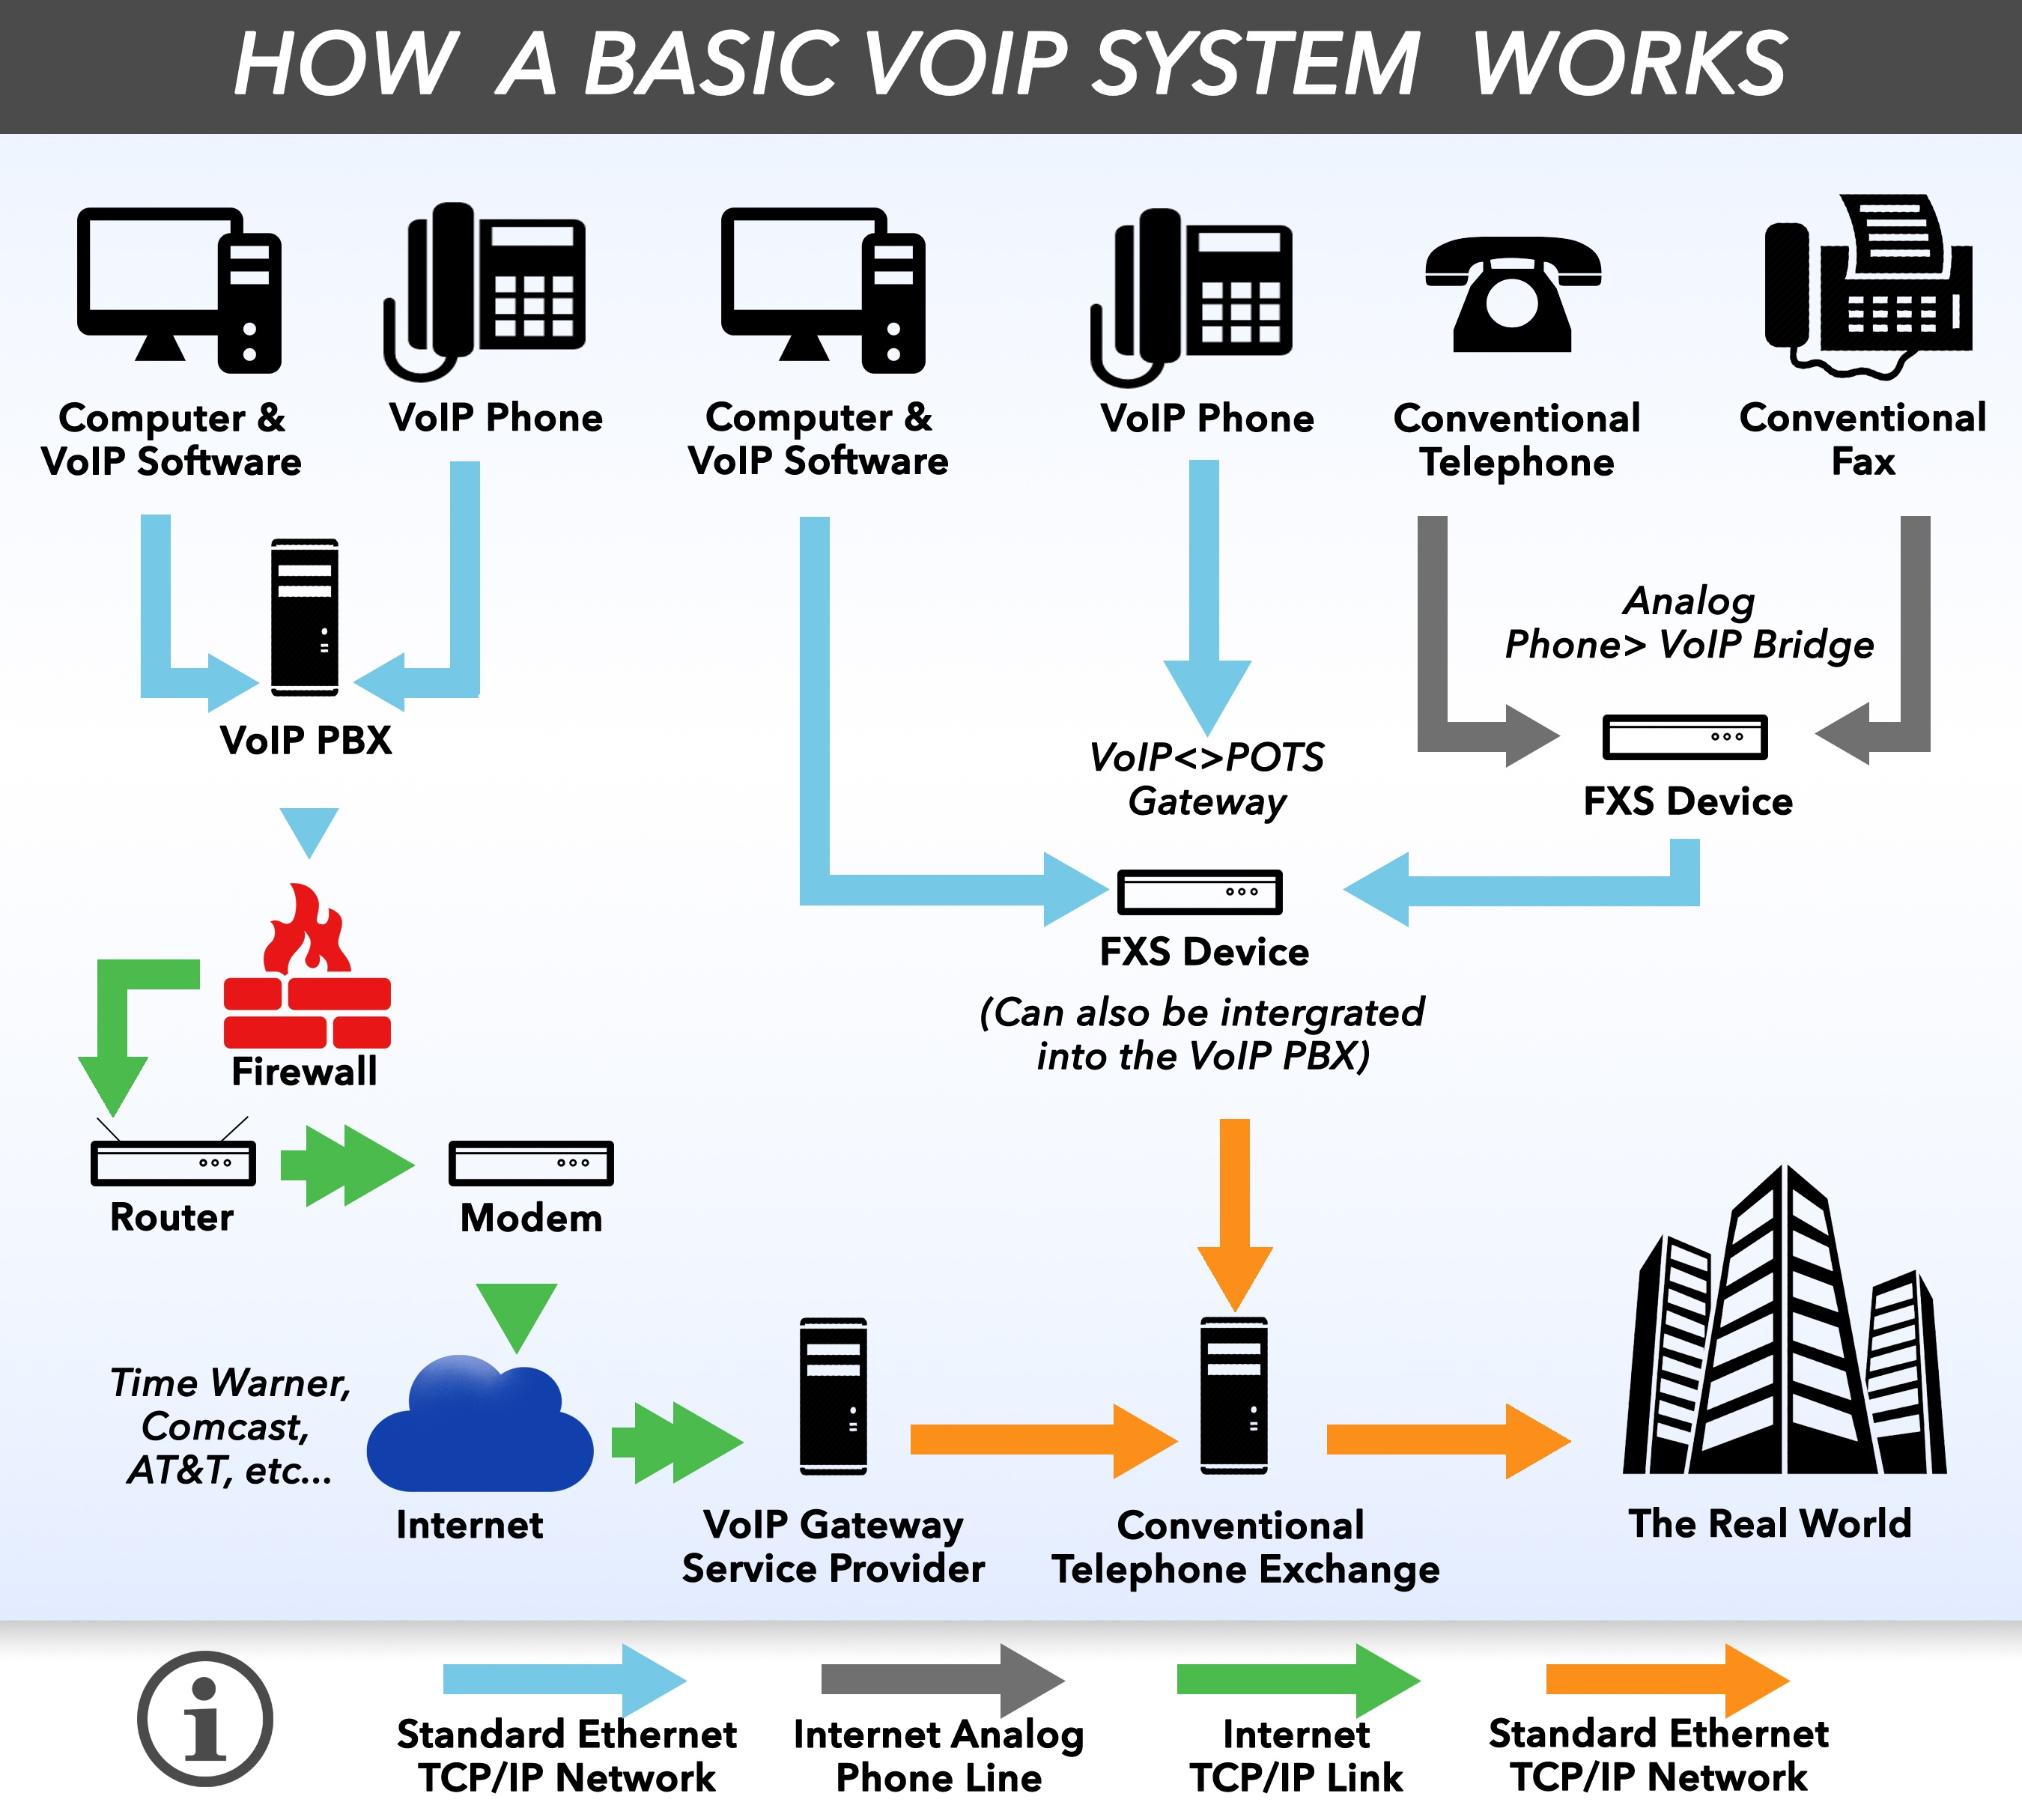 Voip To Rj11 Wiring Diagram Detailed Schematics Comcast Telephone Schematic Diagrams Pinout